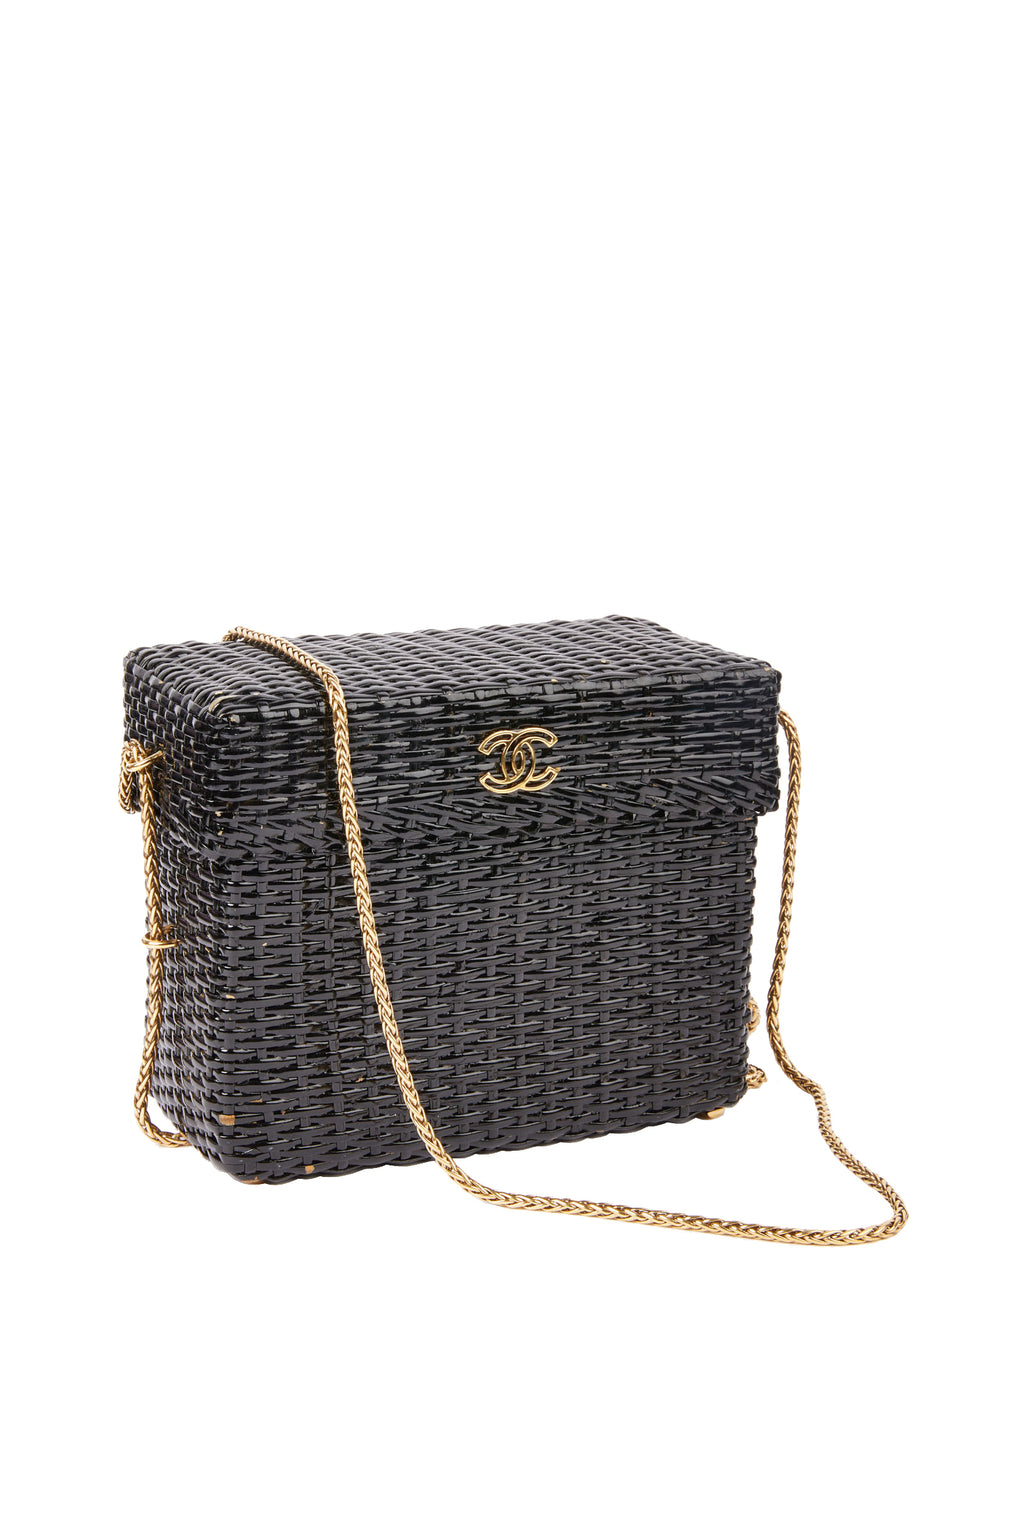 Vintage Coco Chanel Black Straw Wicker Handbag